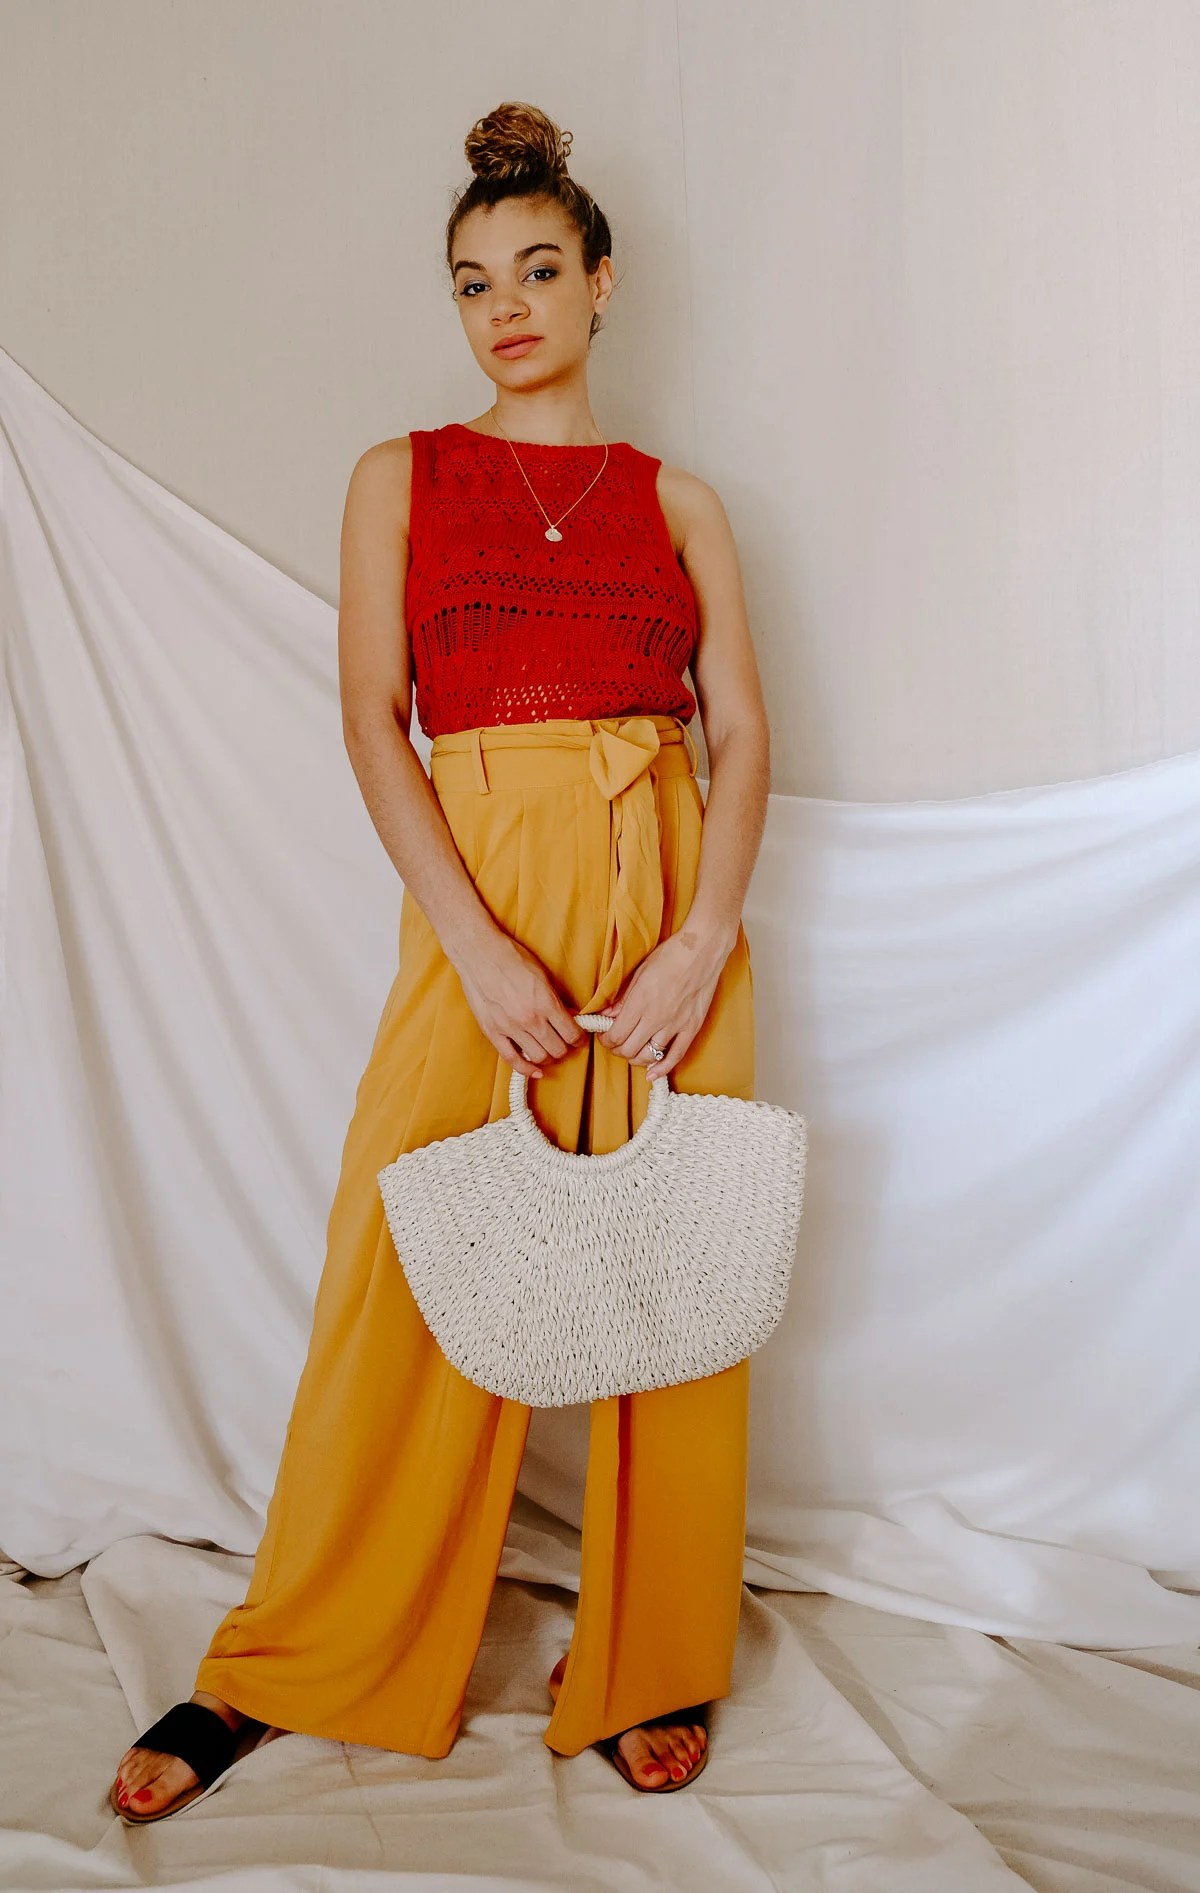 Does the warmer weather inspire you to try out some chic color combos this season? Here are 4 chic color combos to add to your spring and summer outfits! I love this orange and mustard yellow combo.